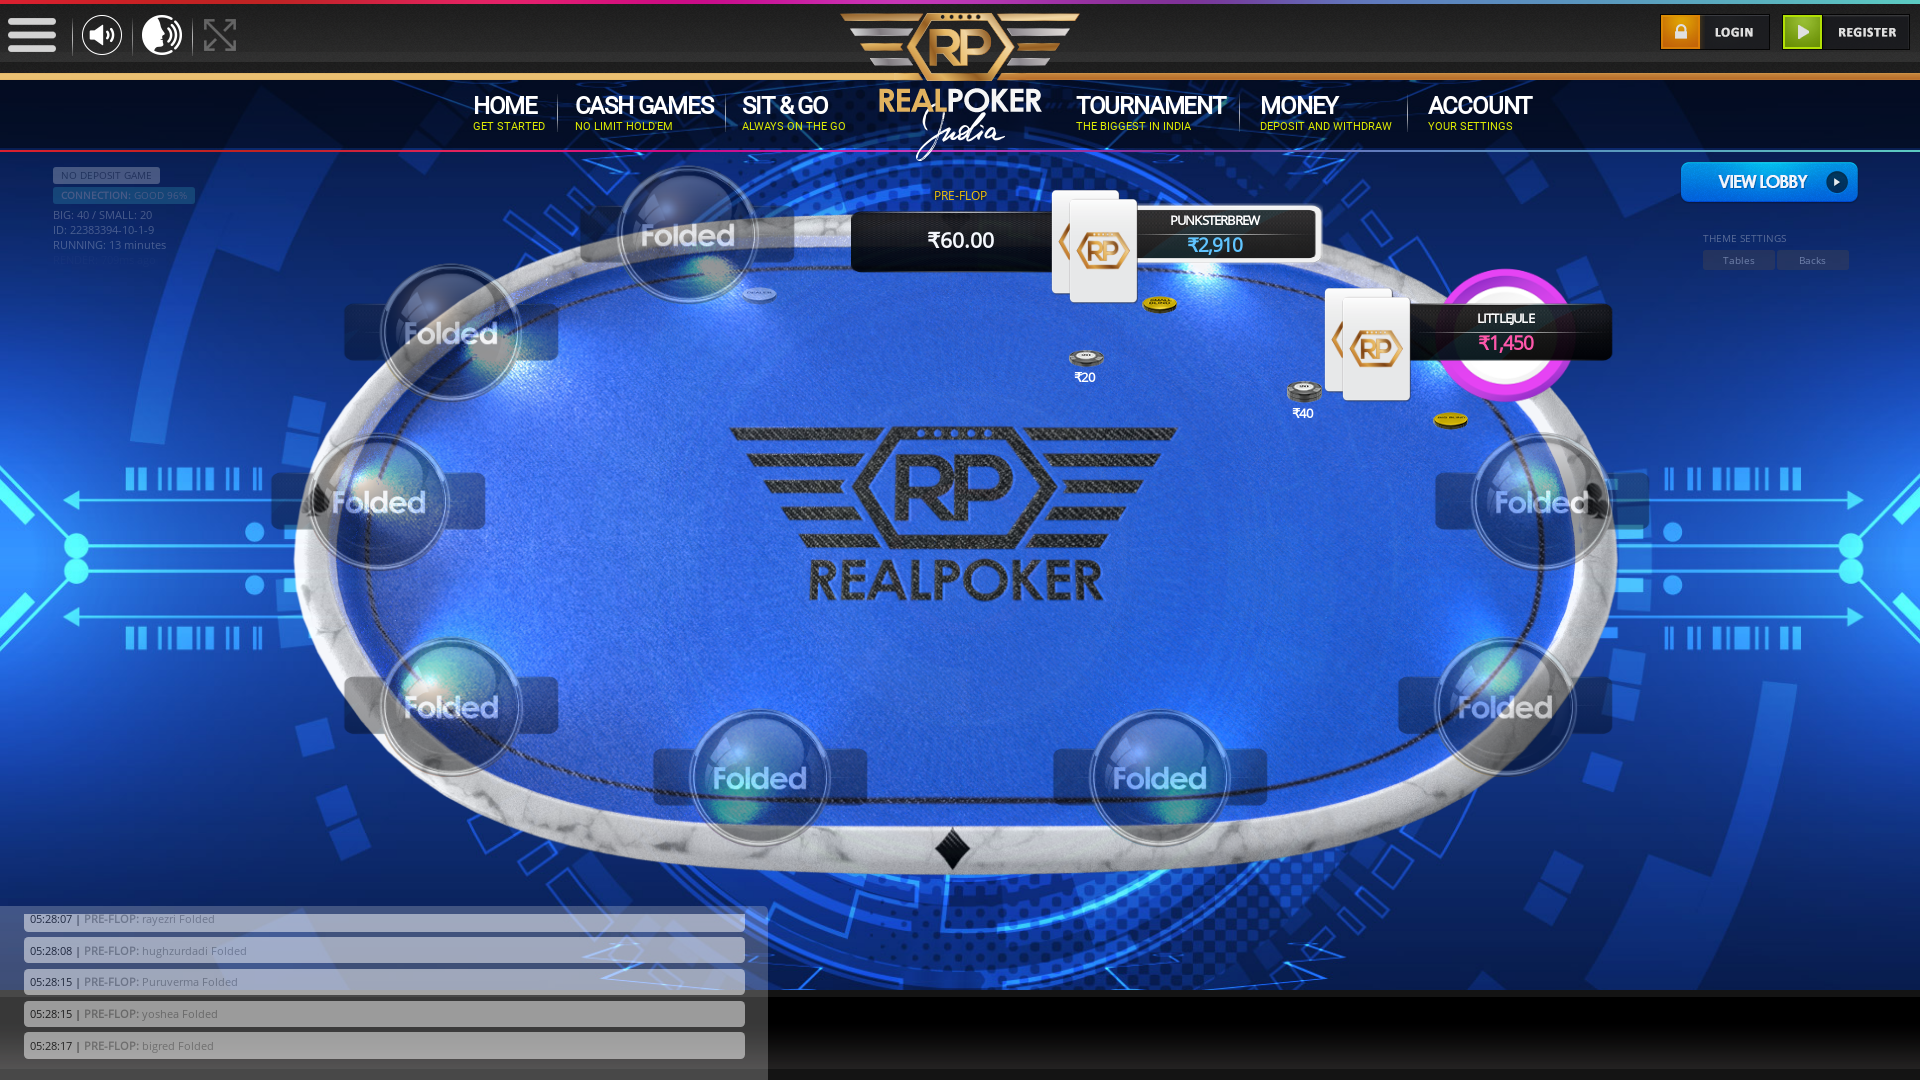 Hauz Khas, New Delhi Poker Website from 23rd August